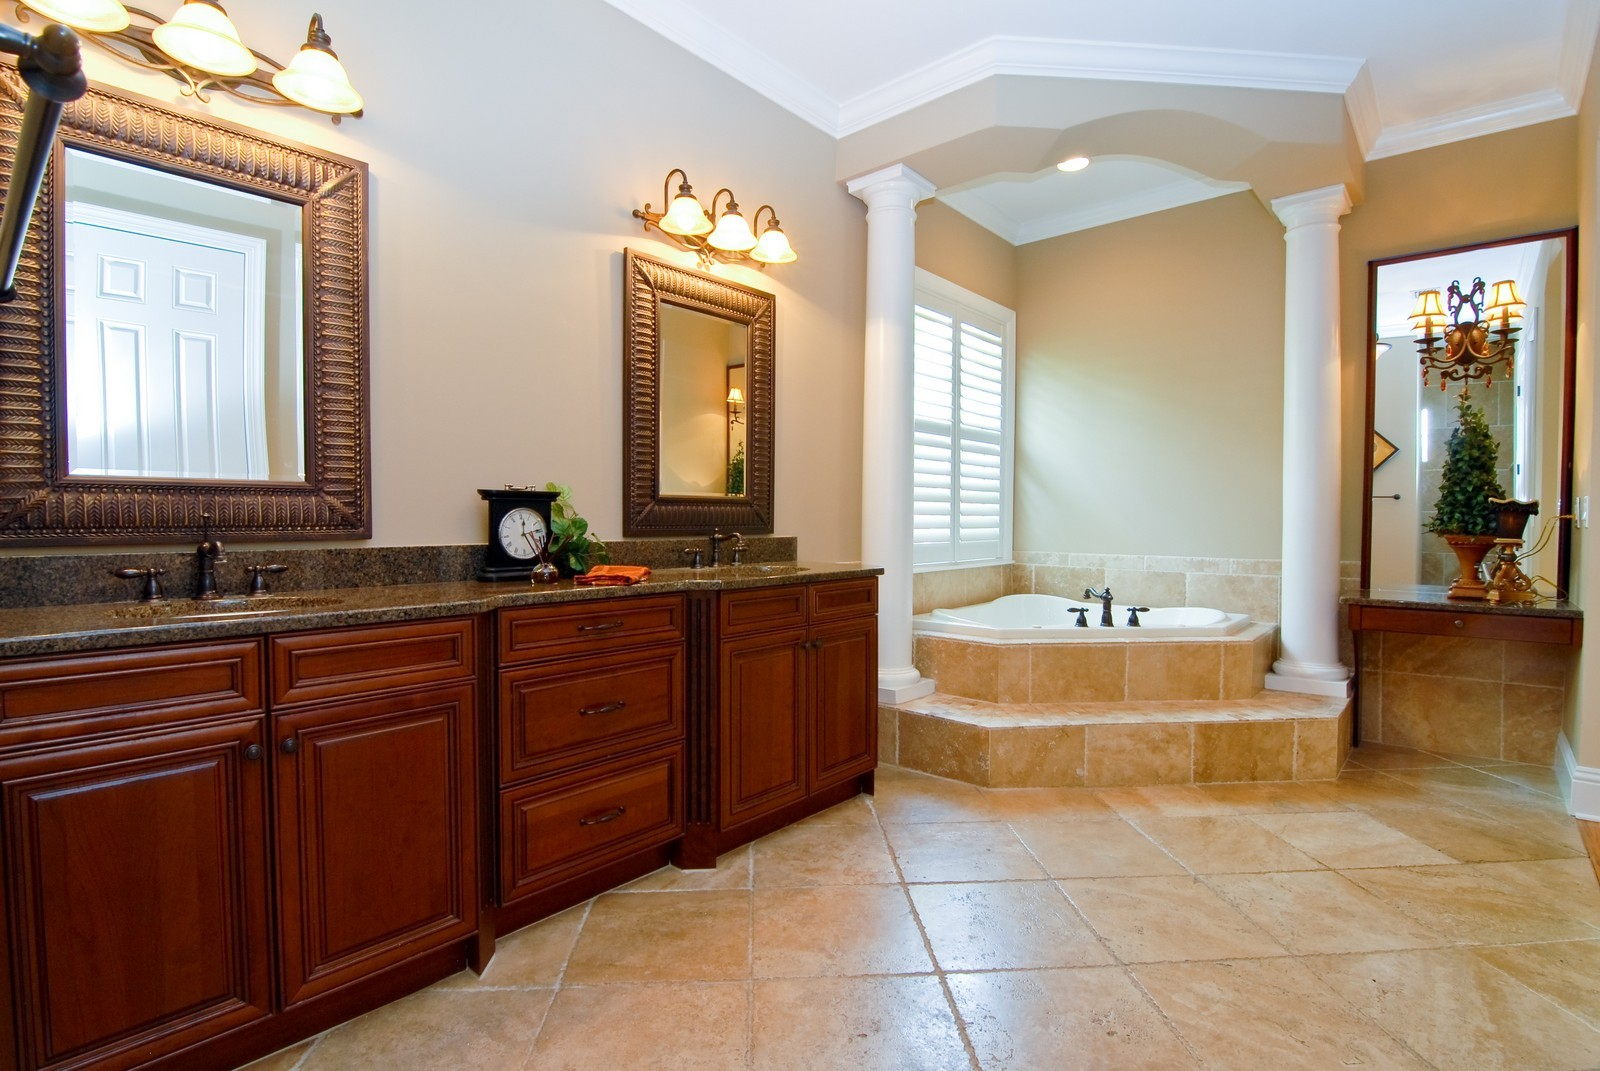 Real Estate Photography - 3107 Fountain Blvd, Tampa, FL, 33609 - Master Bathroom